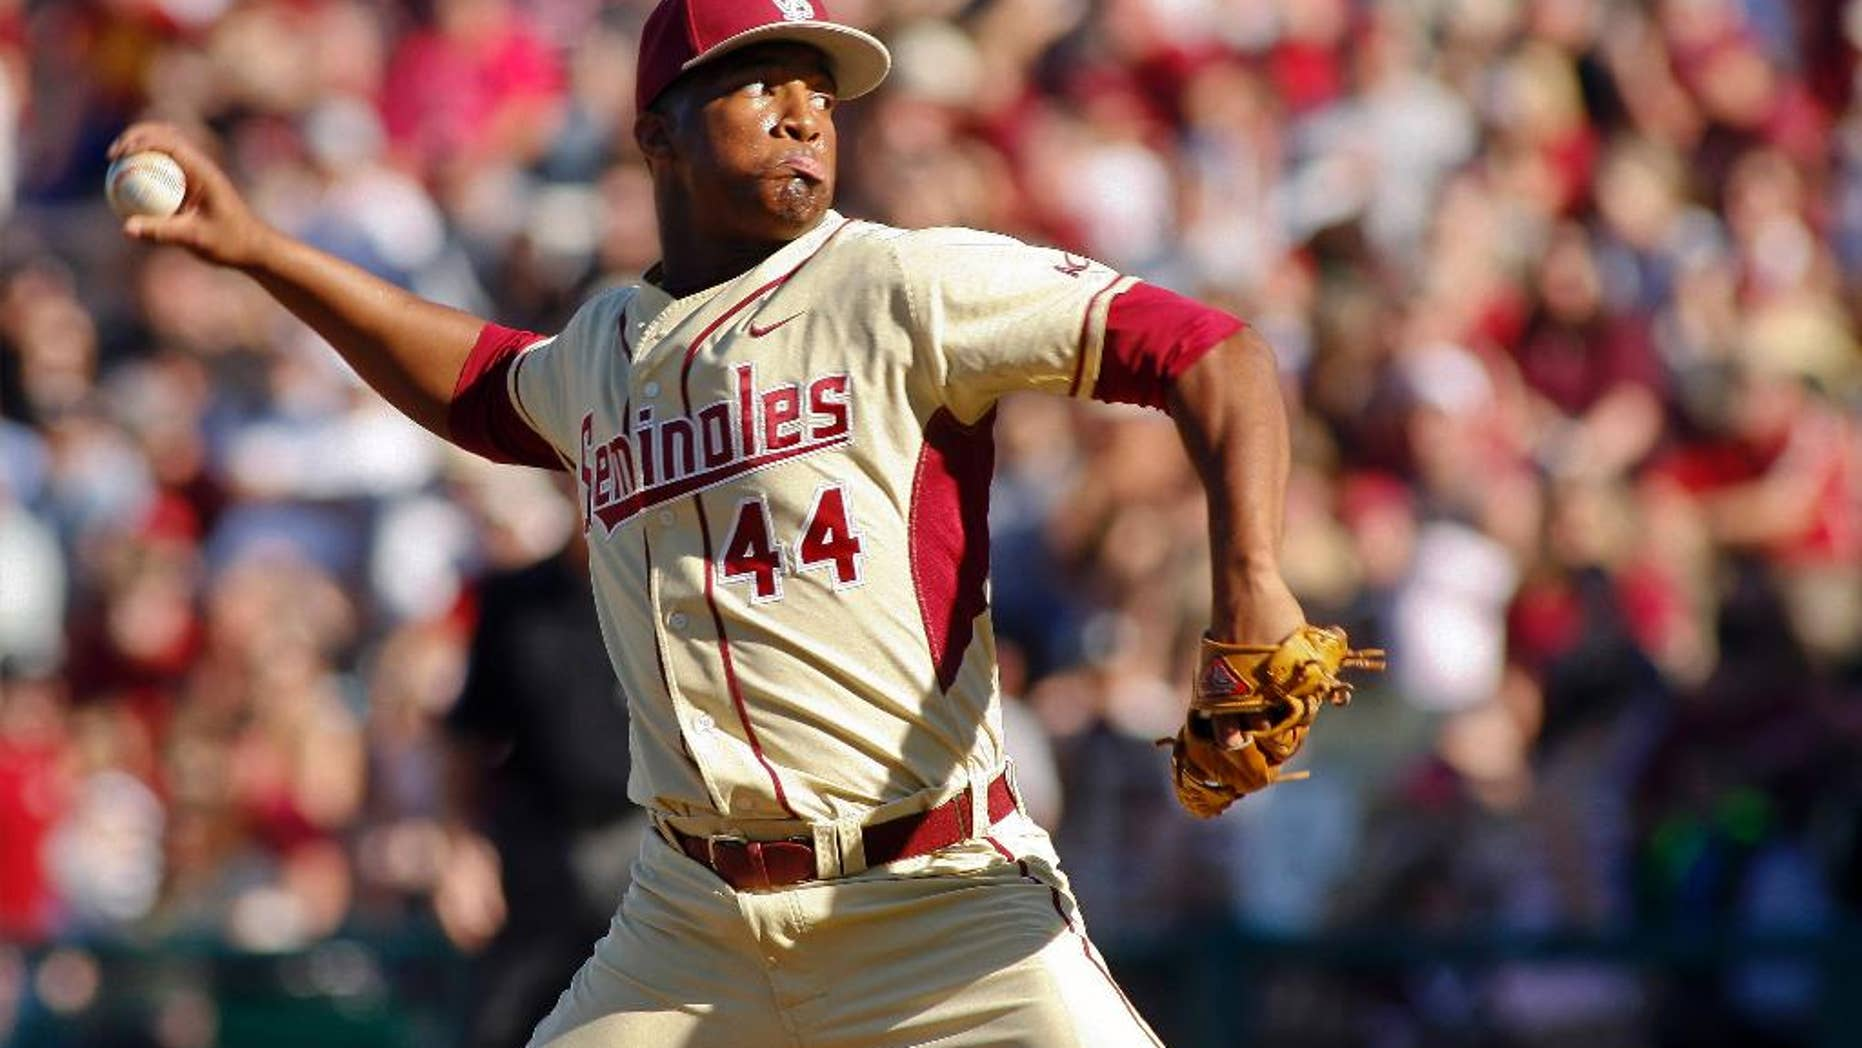 FILE - In this March 2, 2014, file photo, Florida State relief pitcher Jameis Winston throws in the ninth inning of an NCAA collegebaseballgame against Miami in Tallahassee, Fla. Winston put together the best pitching outing of his collegiate baseball career in the Seminoles' 13-inning win against North Carolina State on Saturday, March 15, 2014. (AP Photo/Phil Sears, File)